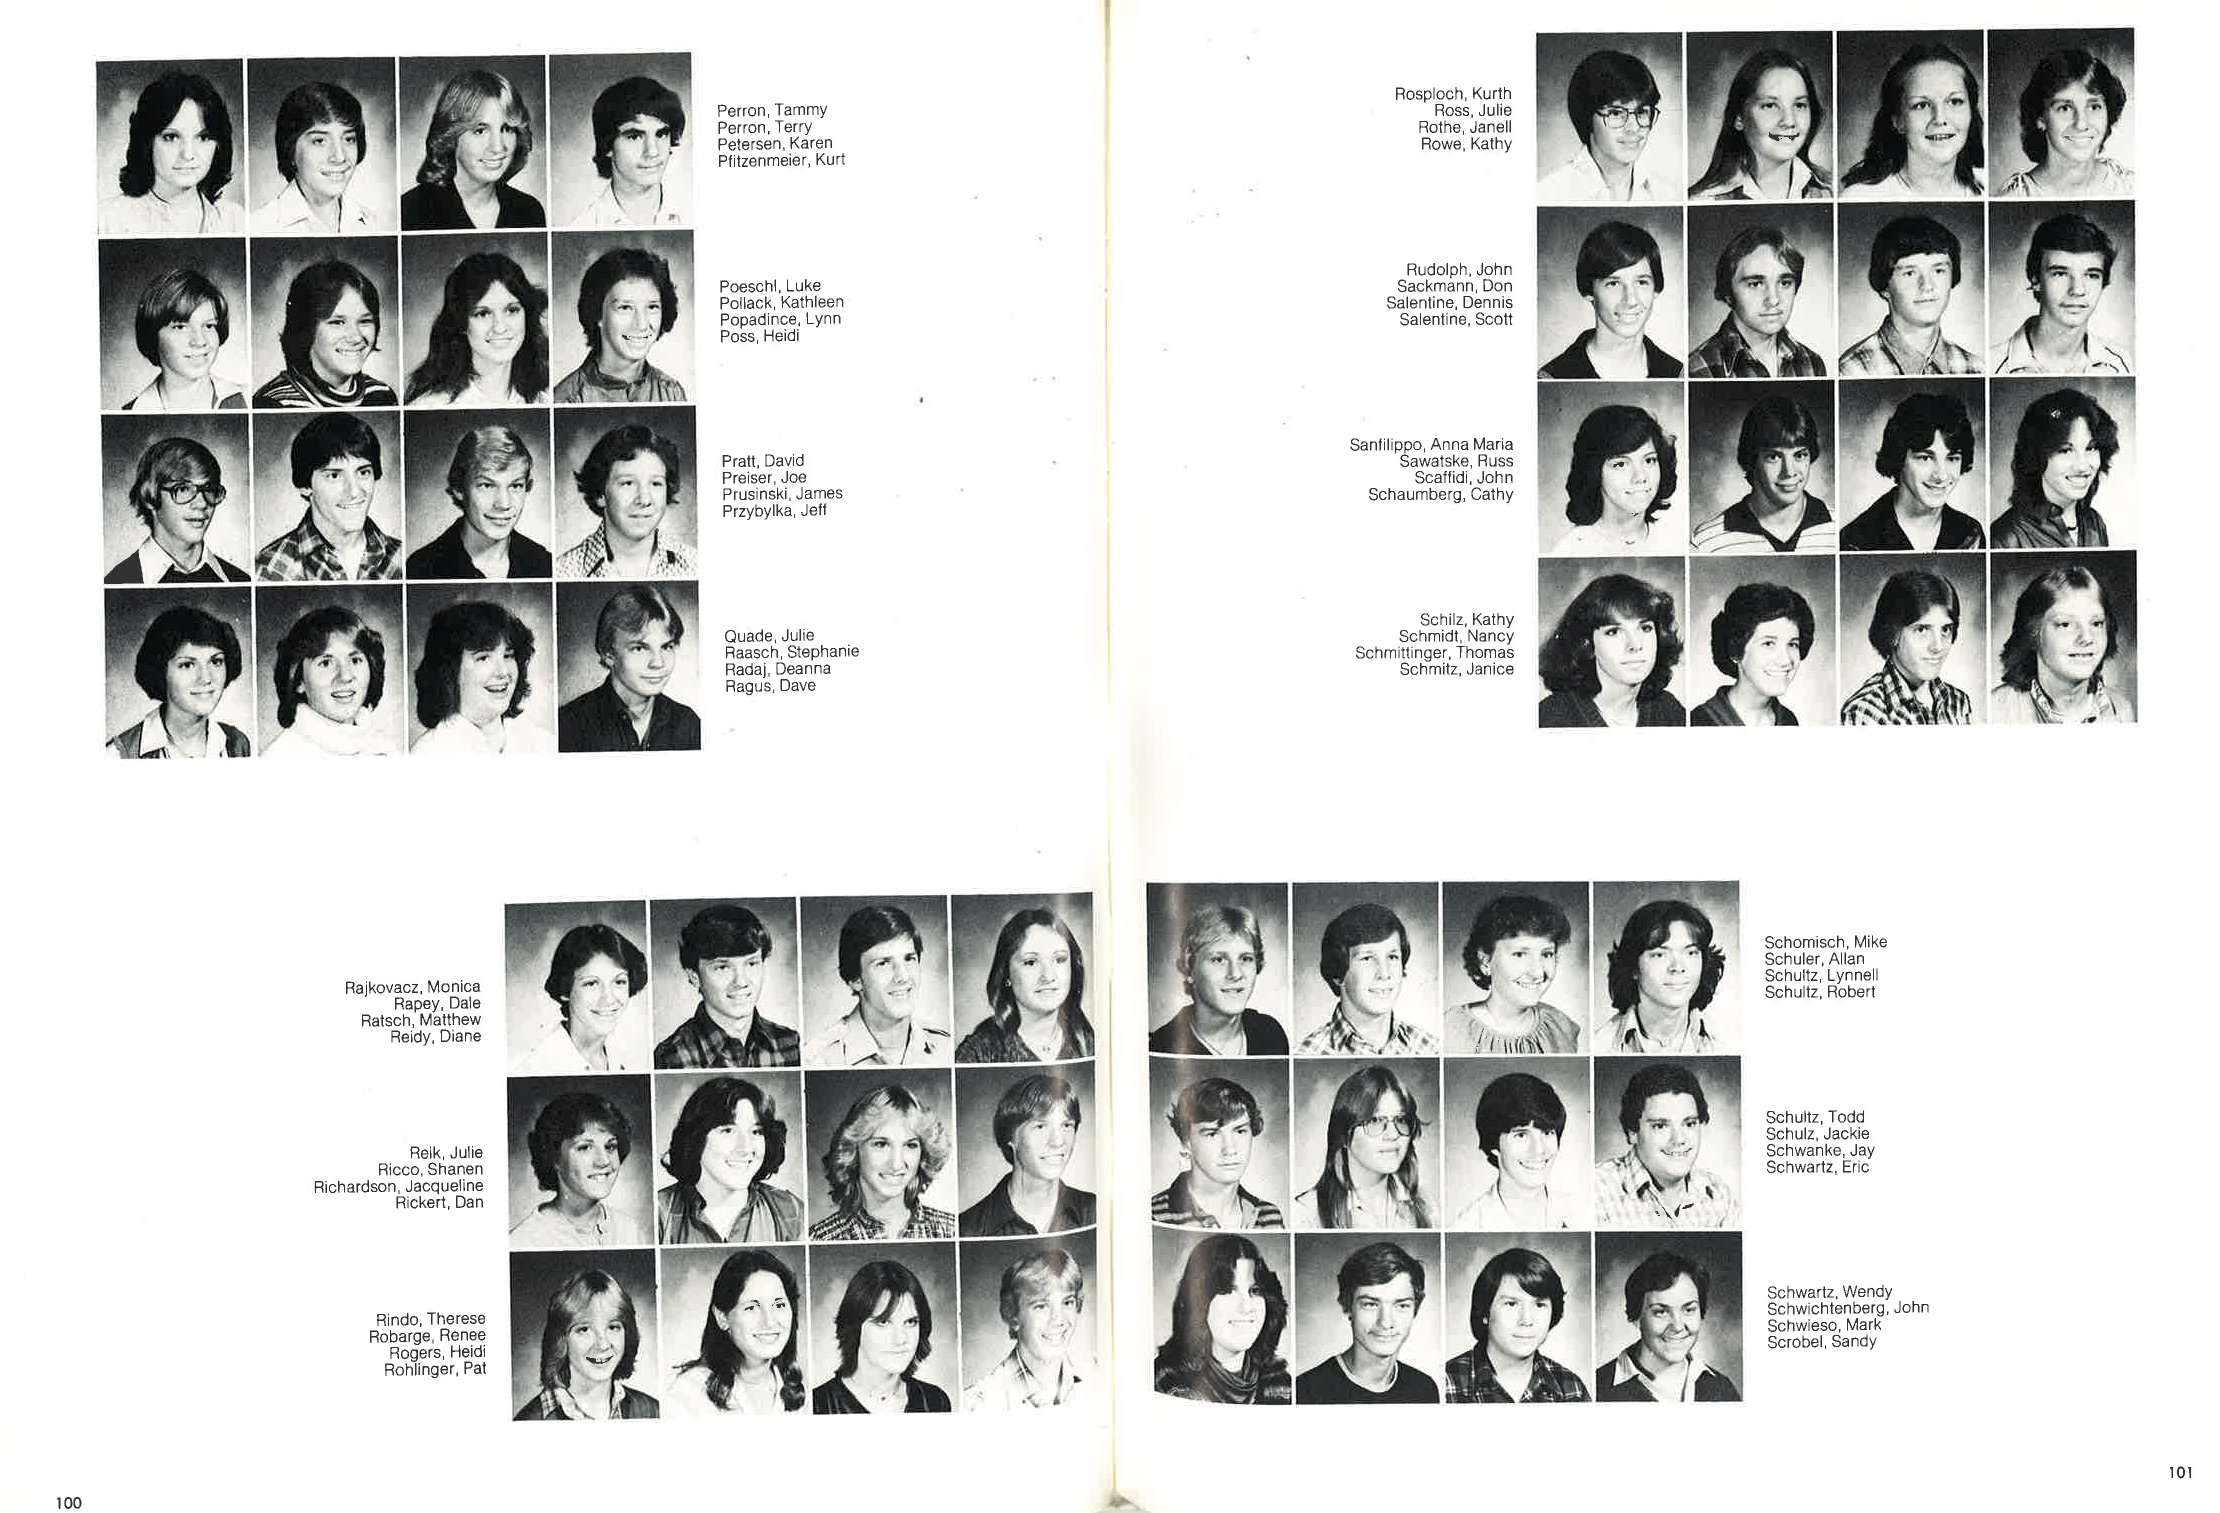 1980_Yearbook_100.jpg